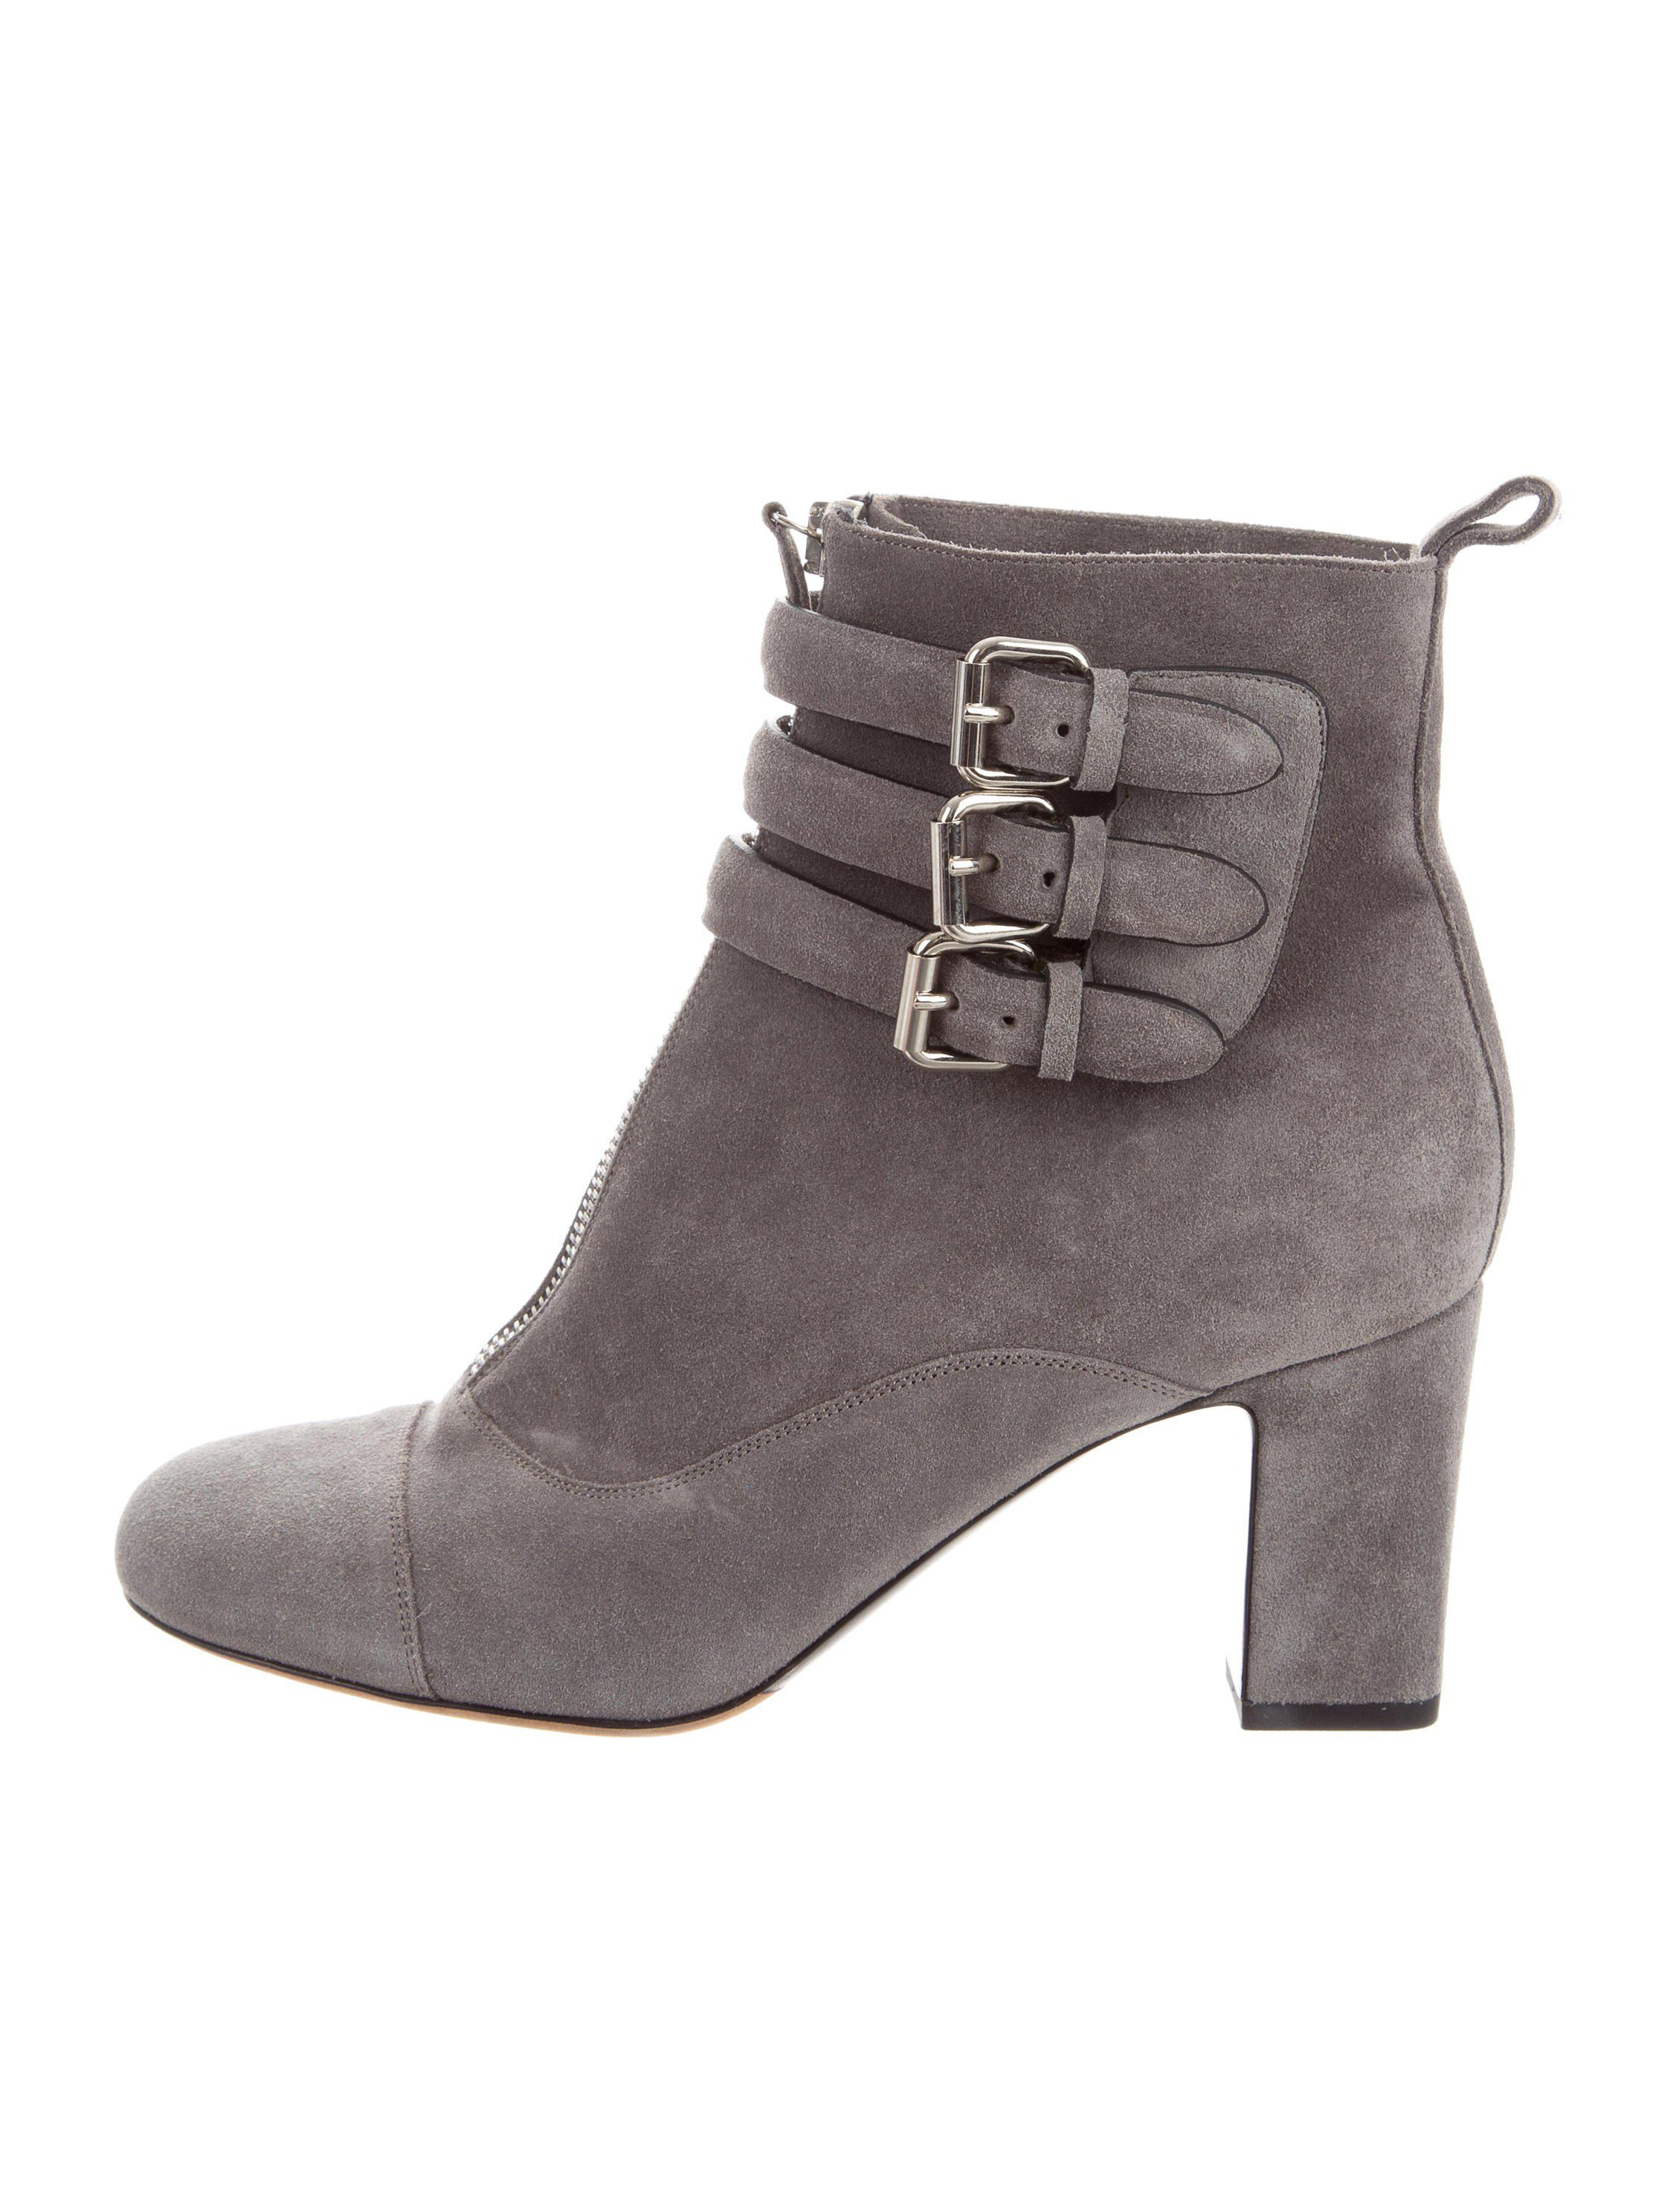 clearance 100% guaranteed buy cheap for nice Tabitha Simmons Suede Buckle-Accented Ankle Boots 96pOUBr